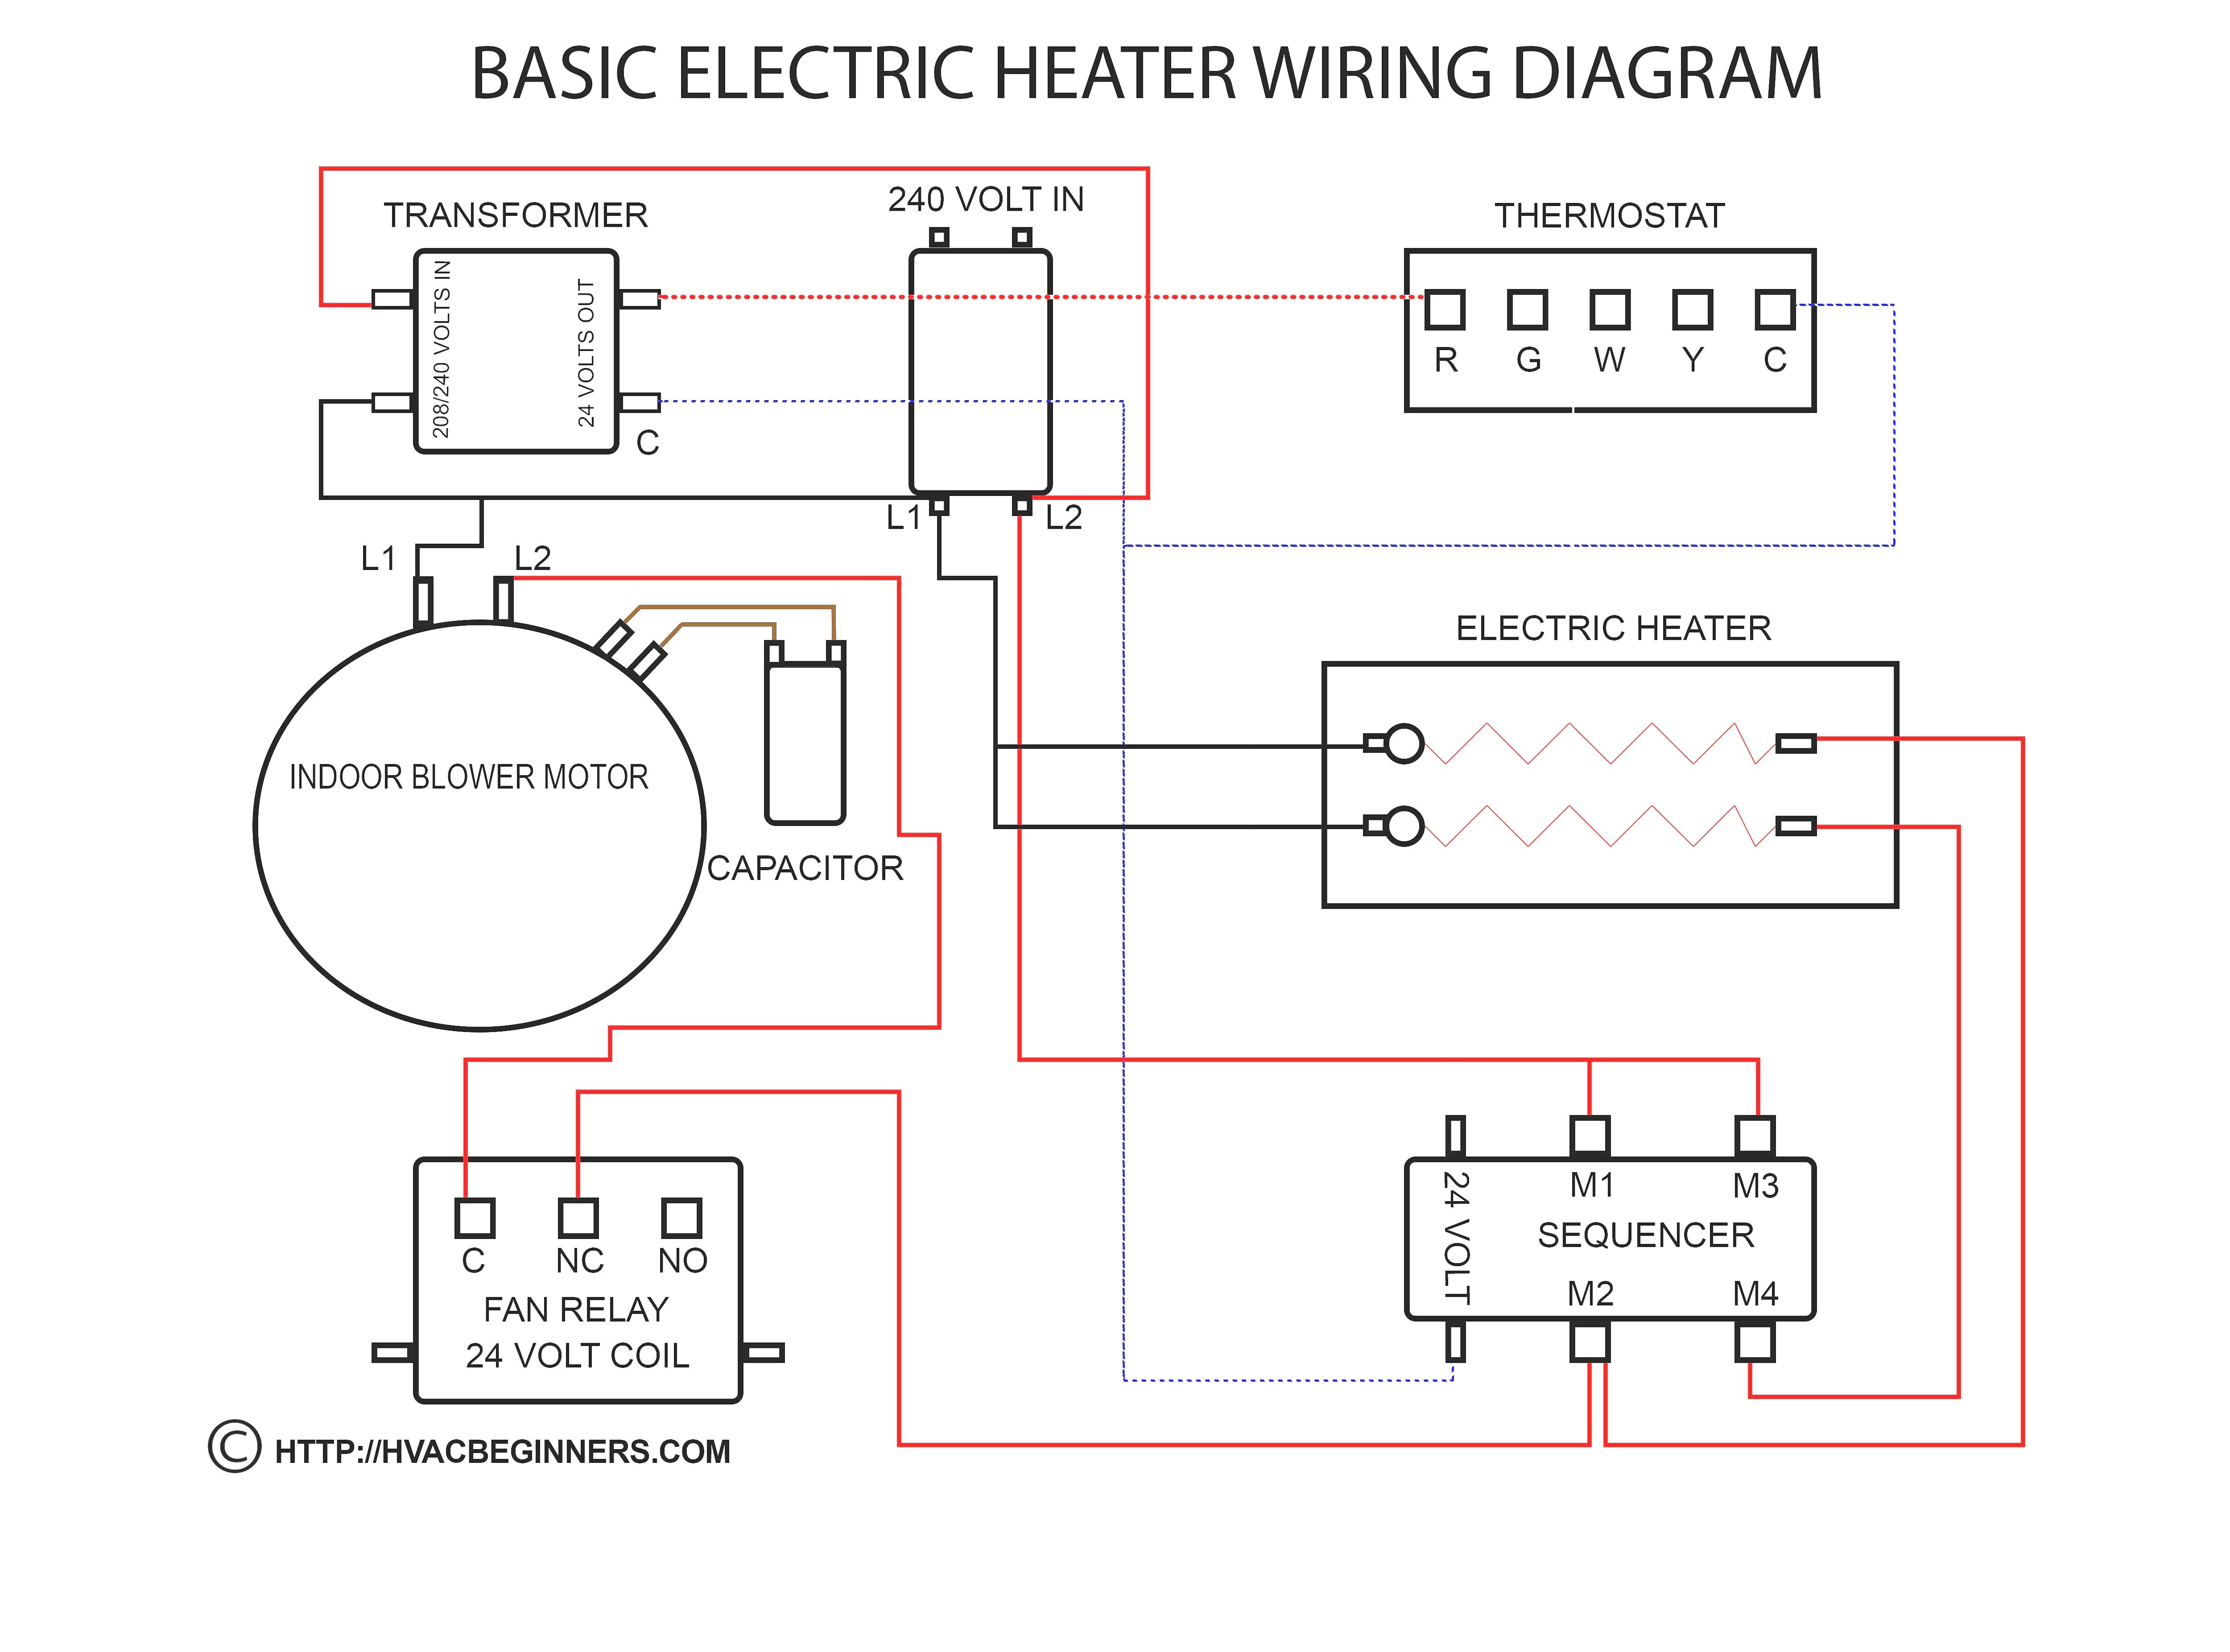 220 volt air conditioner wiring diagram Collection-Wiring Diagram Ac Split New Mcquay Air Conditioner Wiring Diagram Fresh Carrier Split Air 1-m